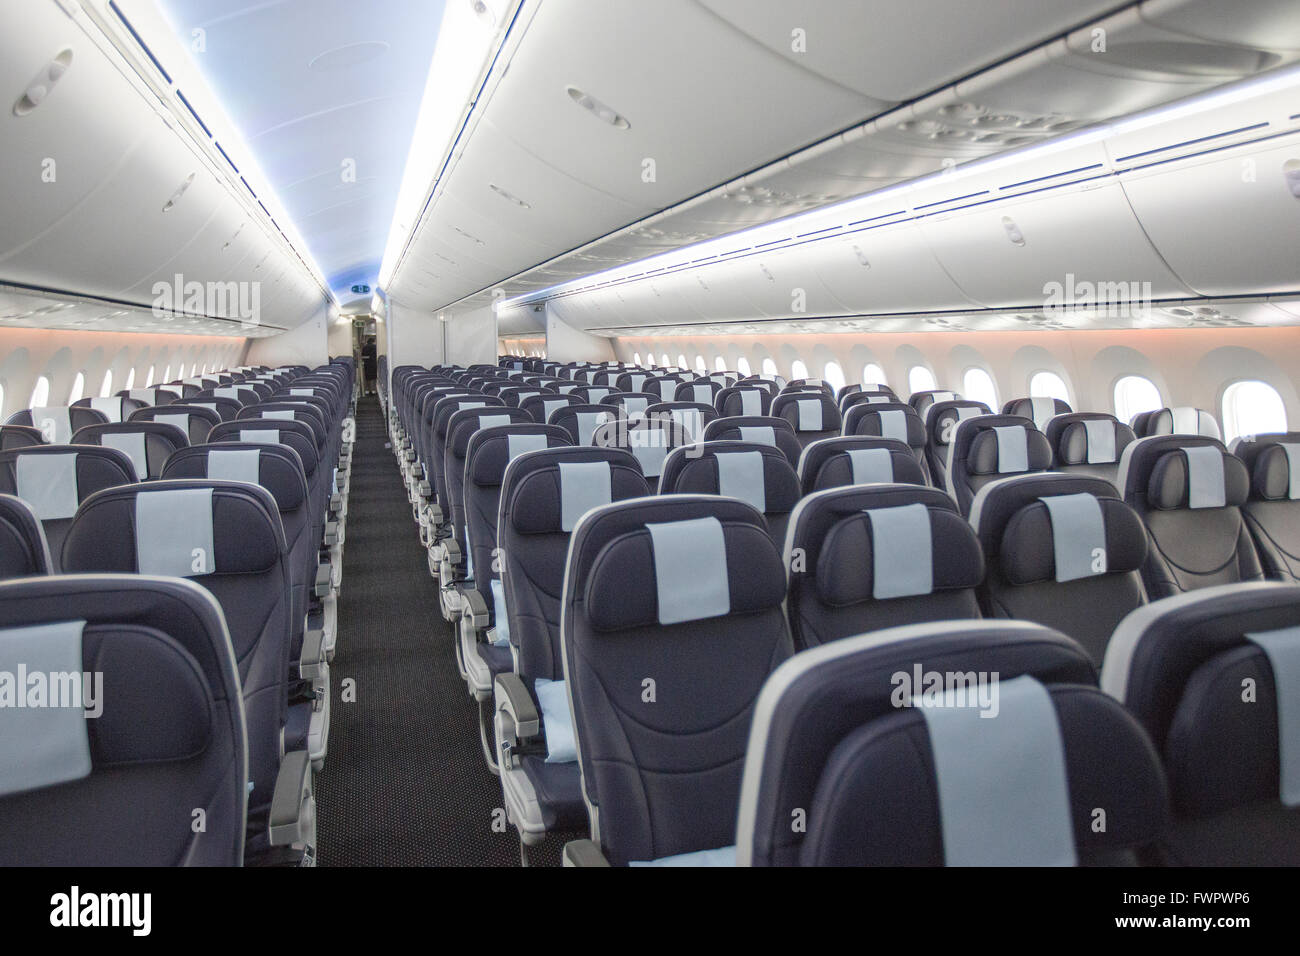 Inside 787 8 dreamliner images reverse search for Interior 787 air europa